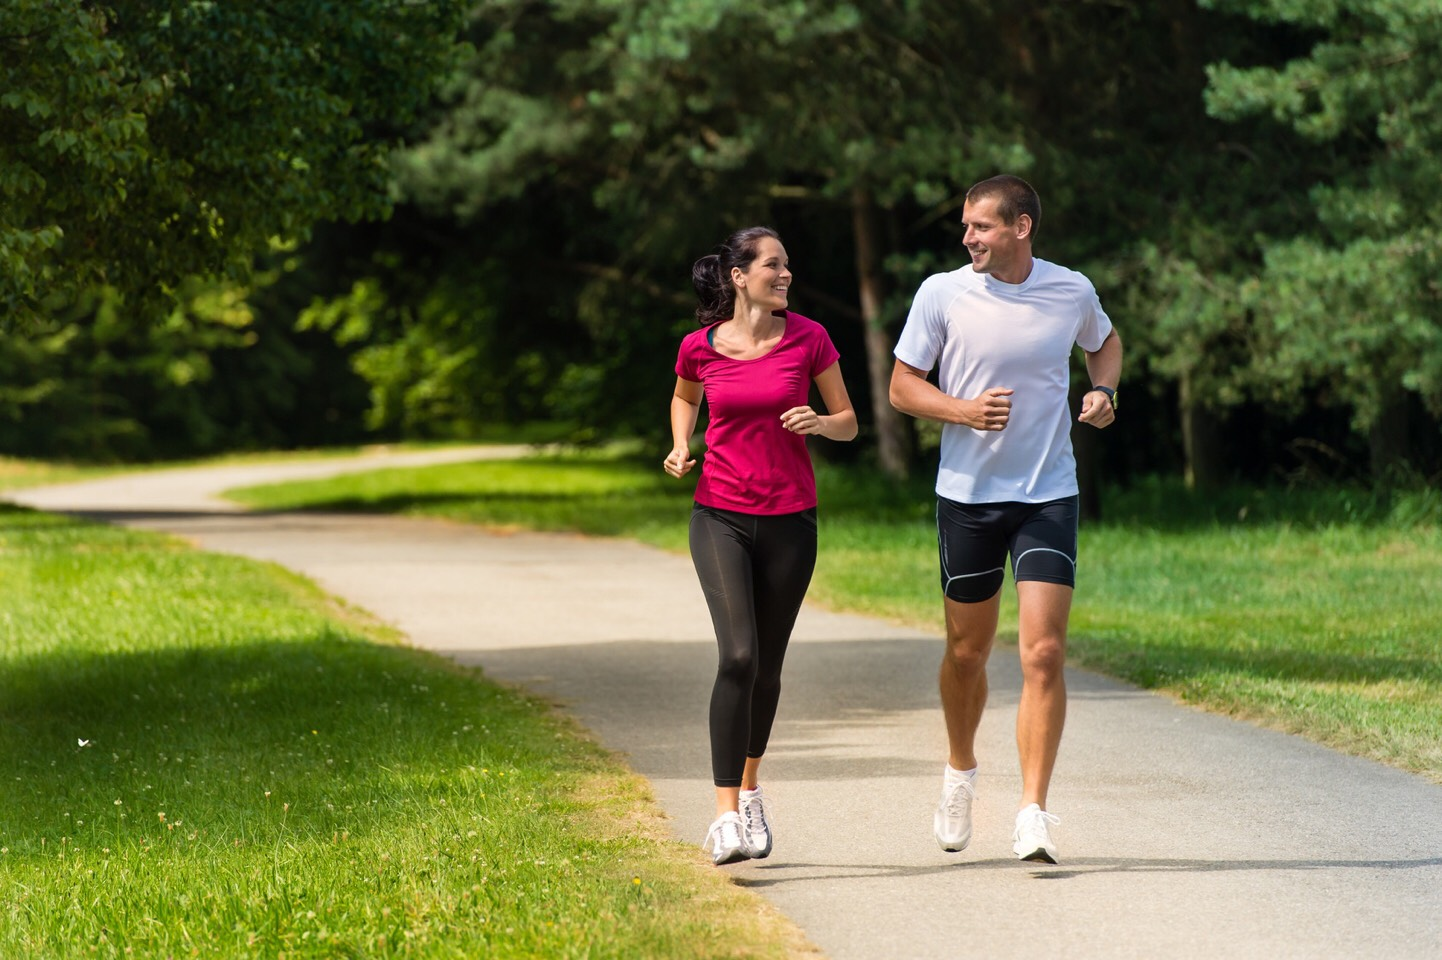 If you run with a friends or family can lose weight while hanging out with people you love